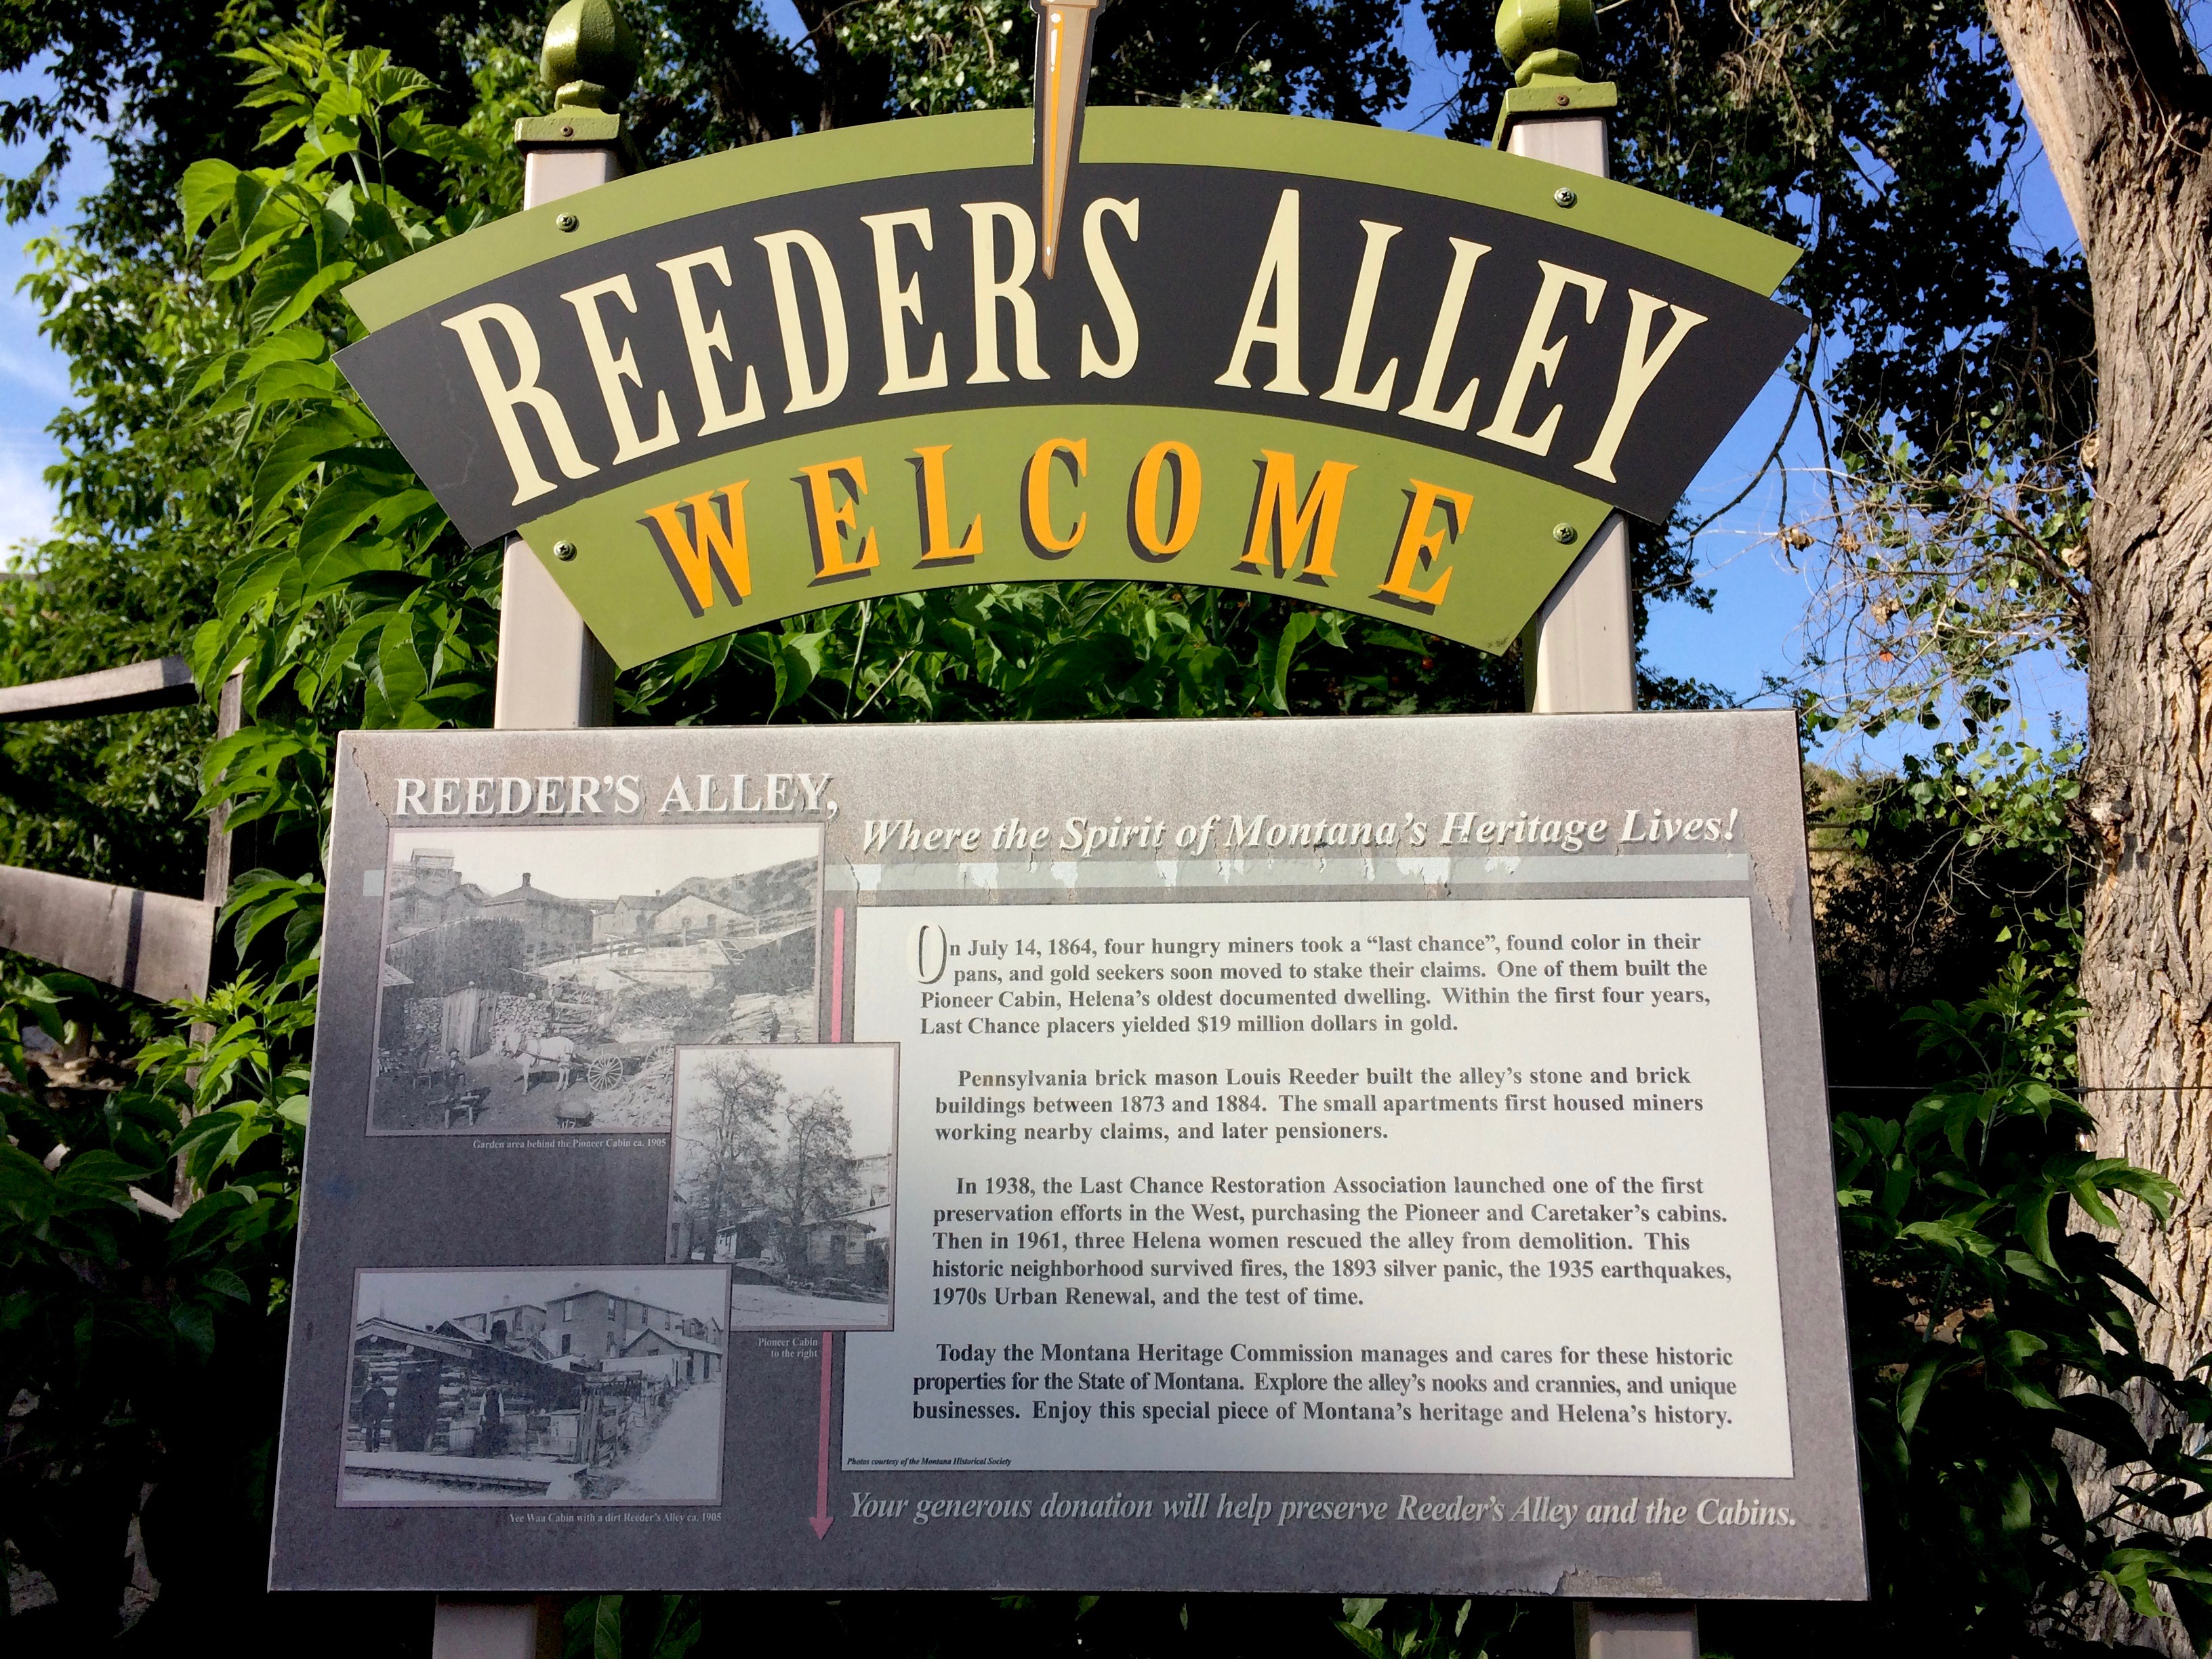 Reeders Alley signage